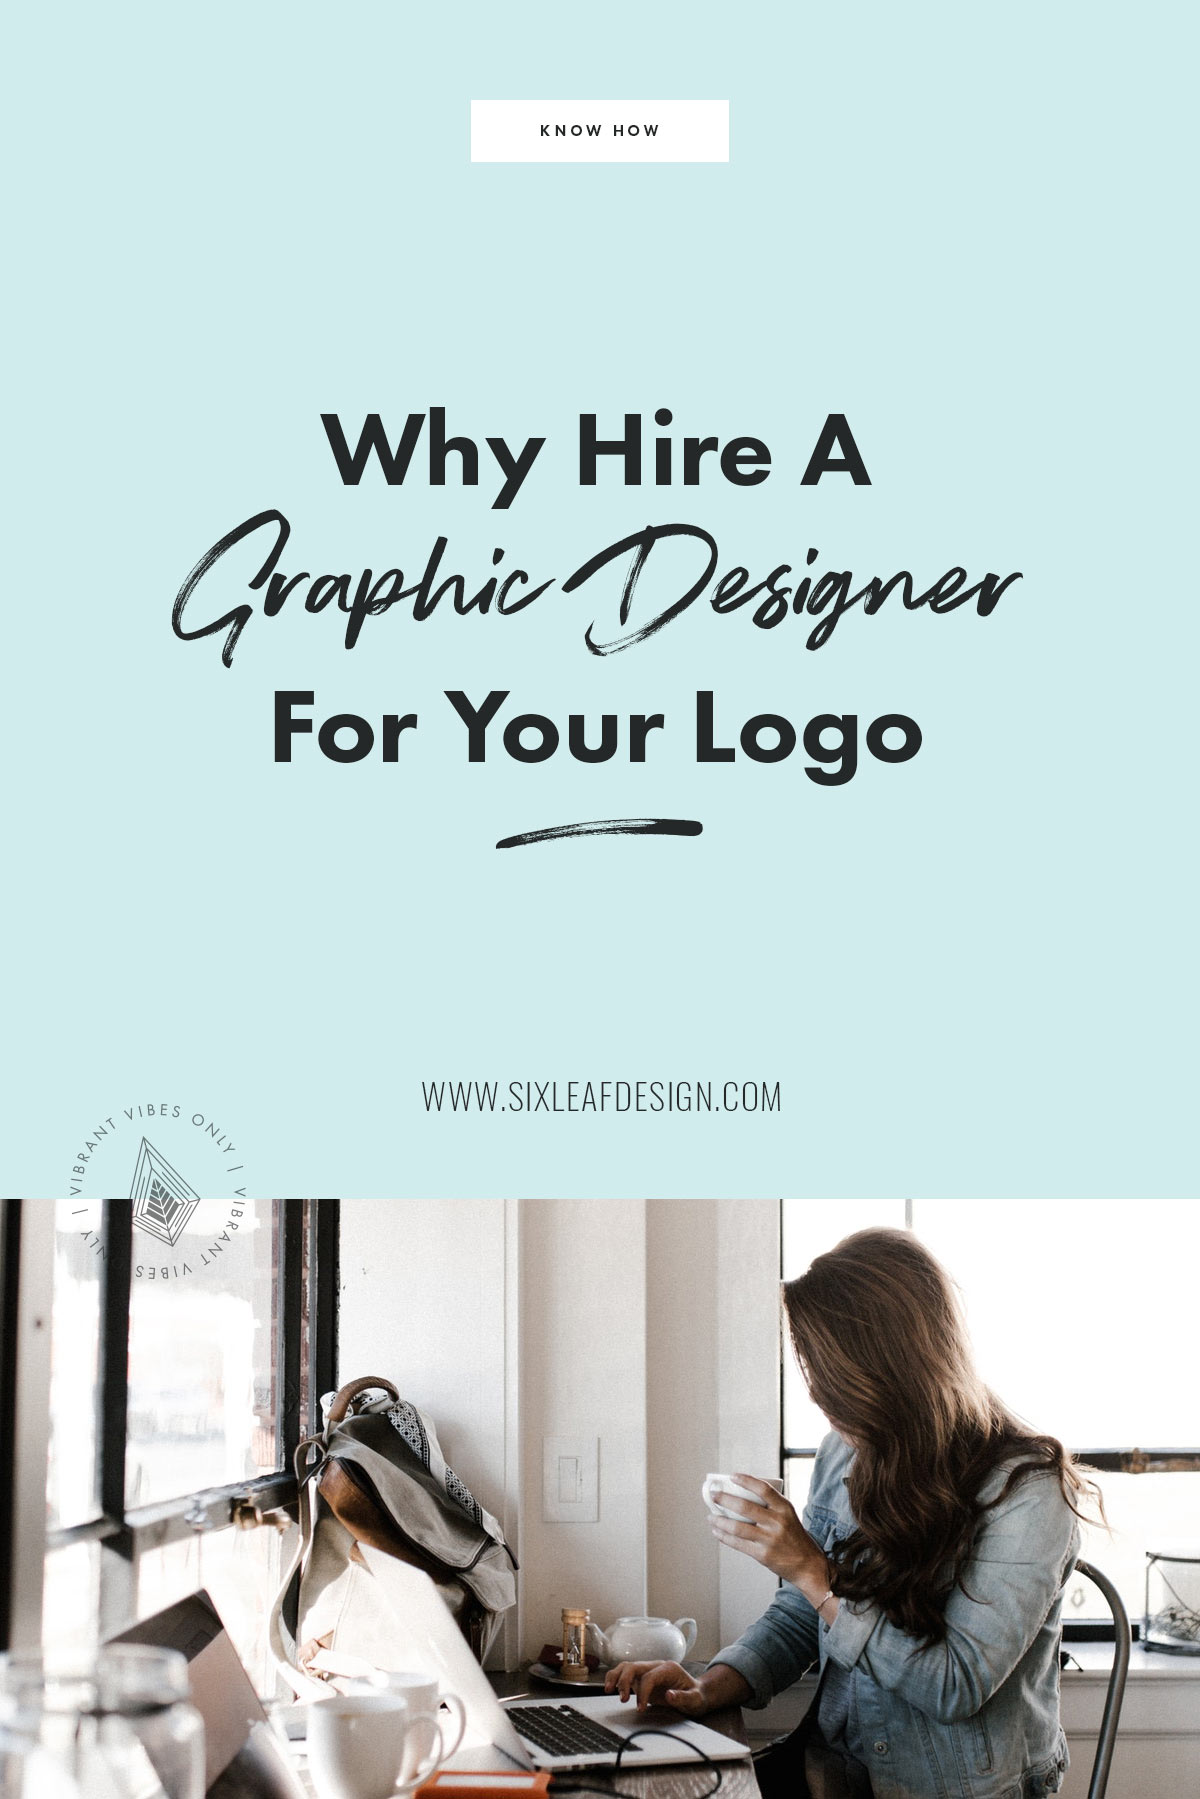 Why Hire a Graphic Designer for Your Logo